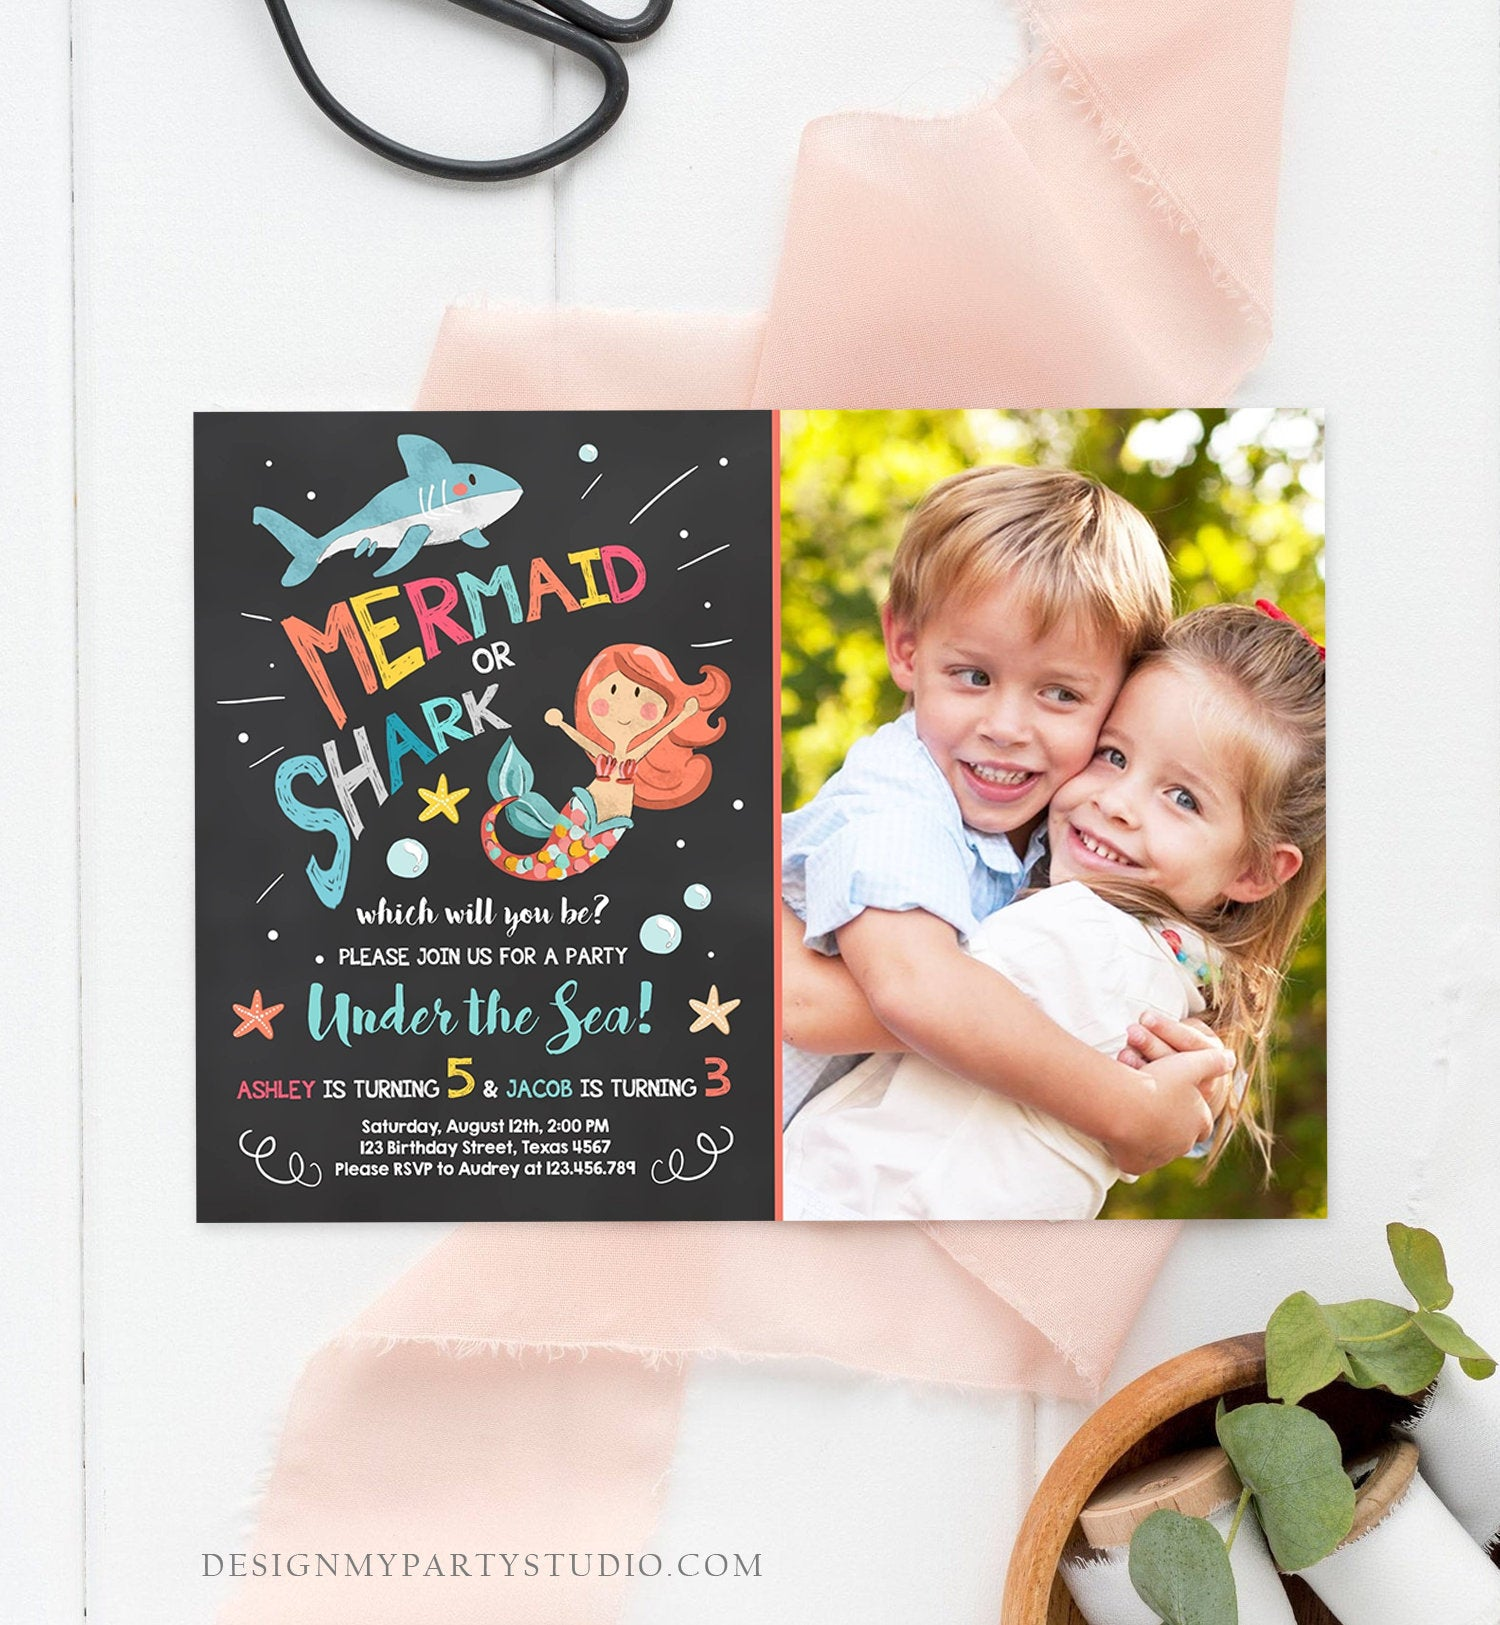 Editable Mermaid or Shark Birthday Invitation Under The Sea Party Coed Pool Party Brother Sister Photo Ocean Corjl Template Printable 0197